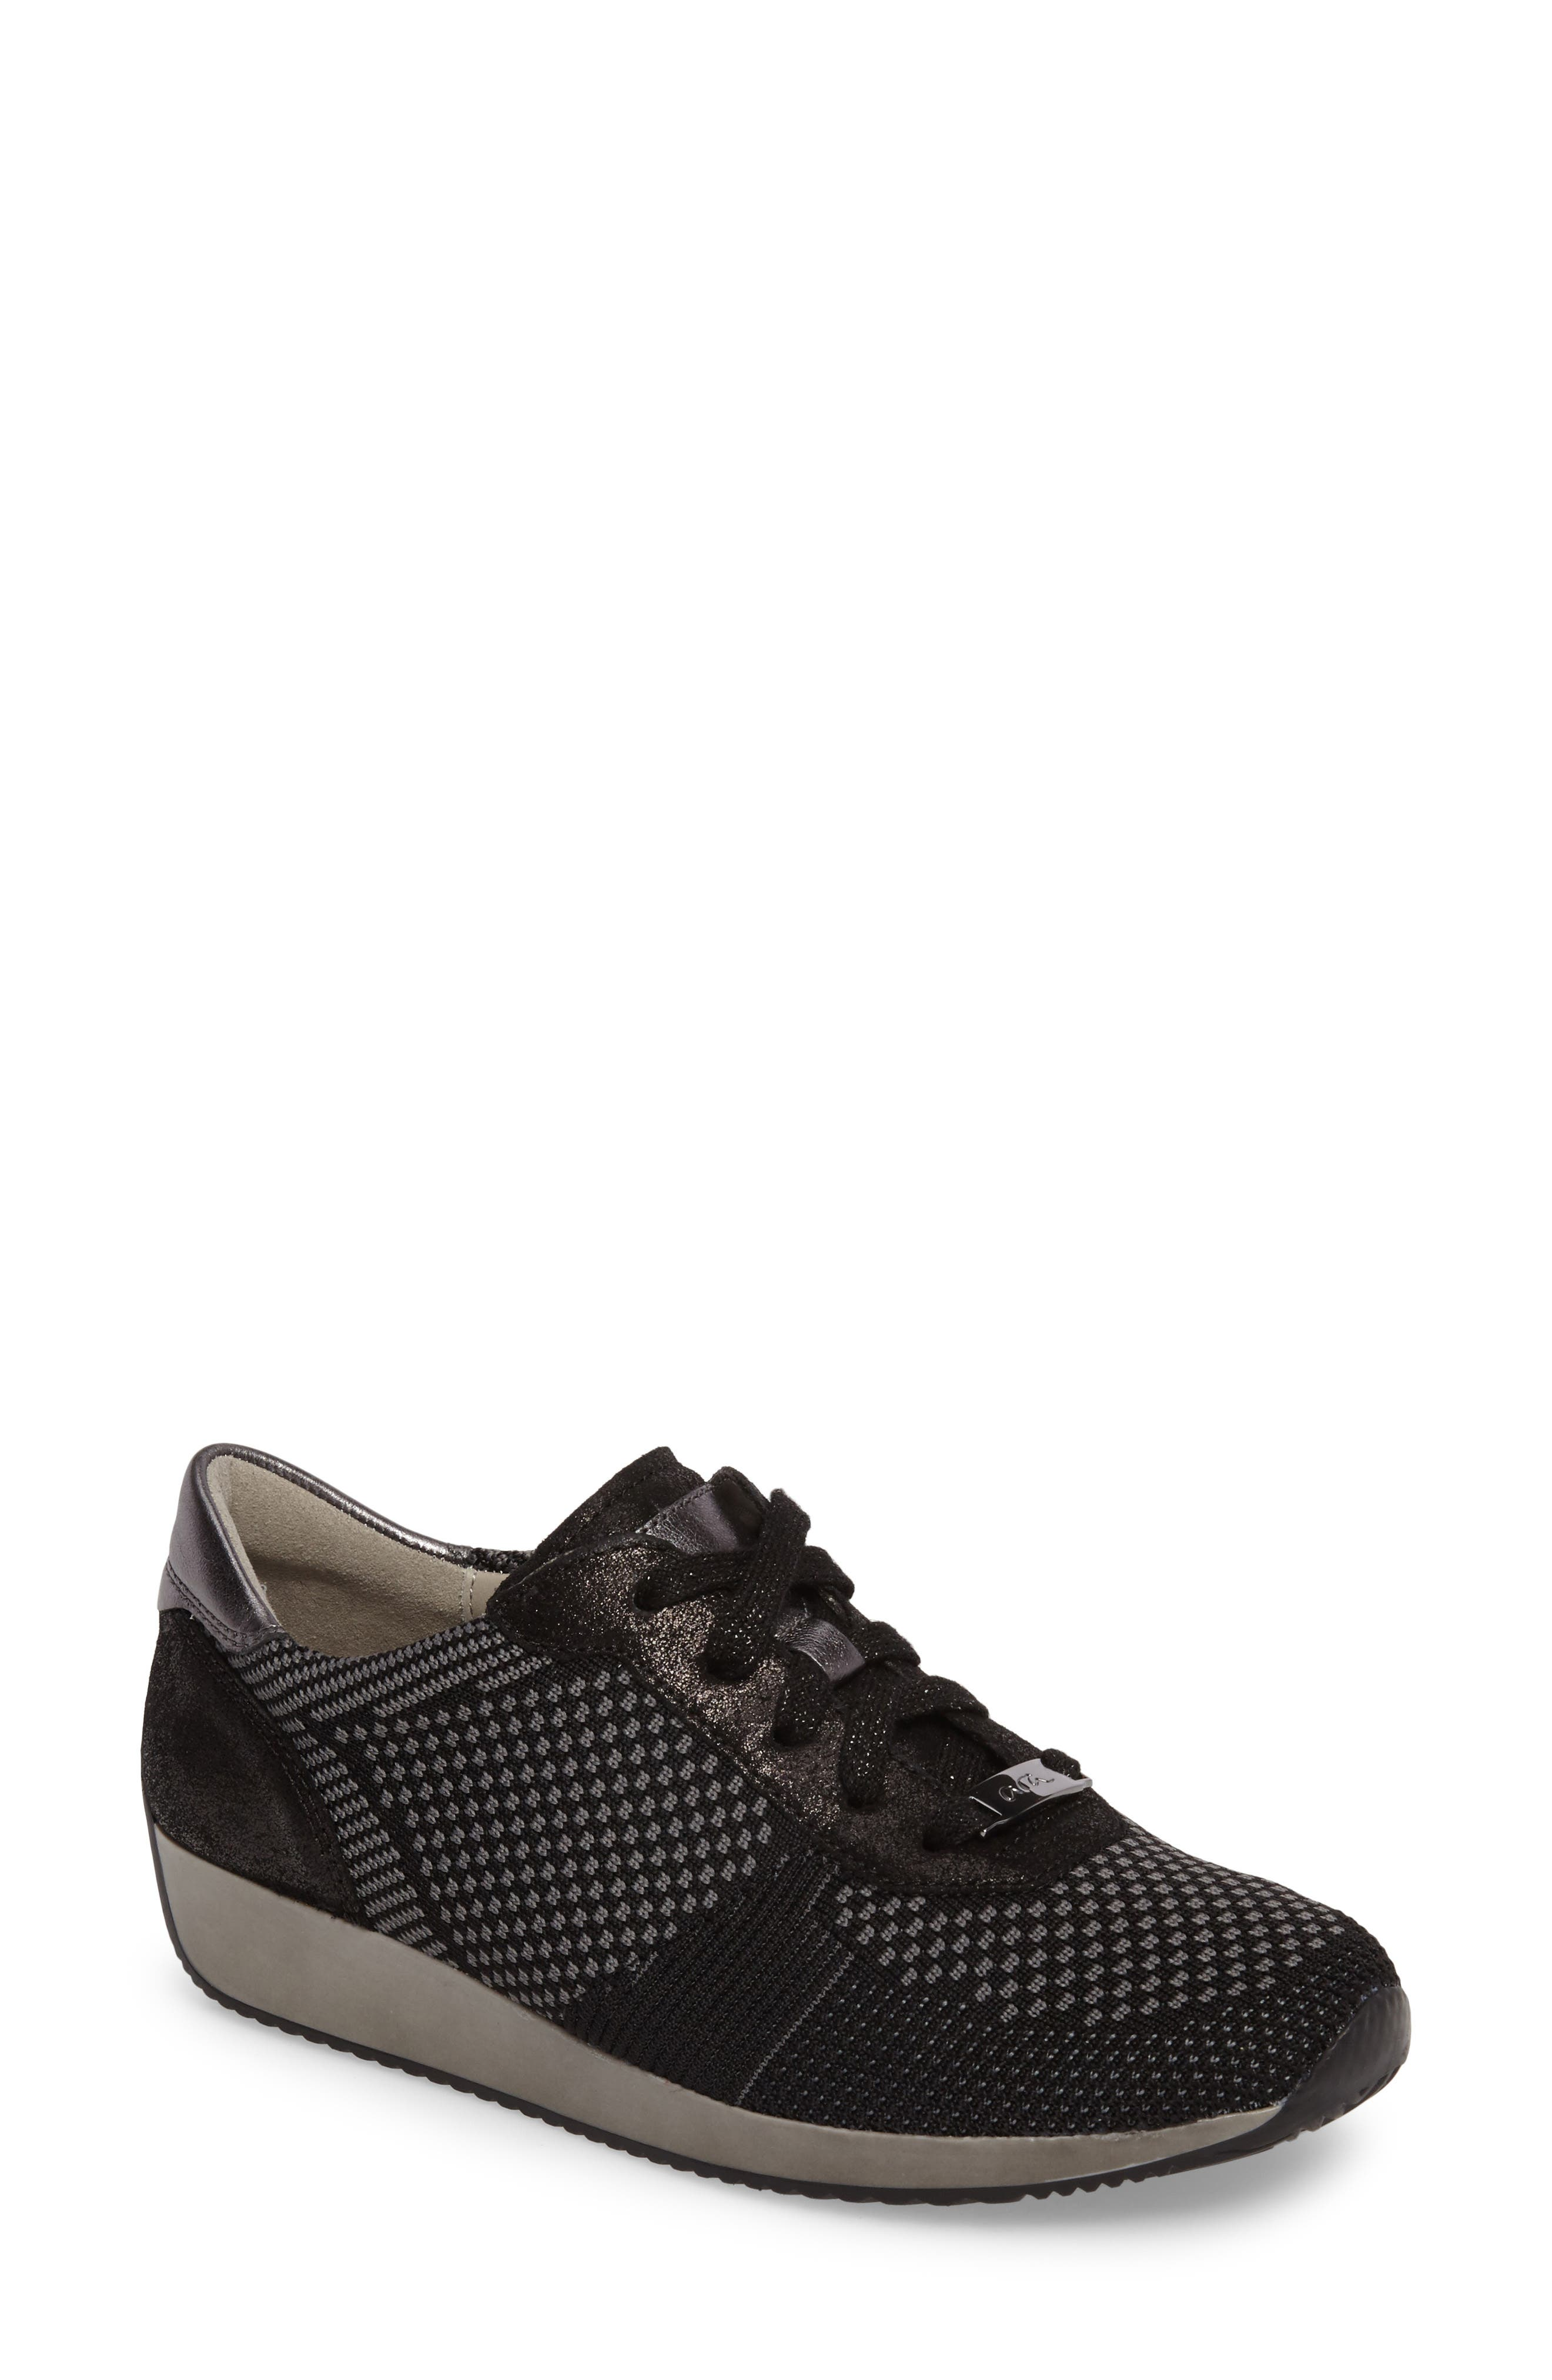 Lilly Sneaker,                         Main,                         color, Black Leather